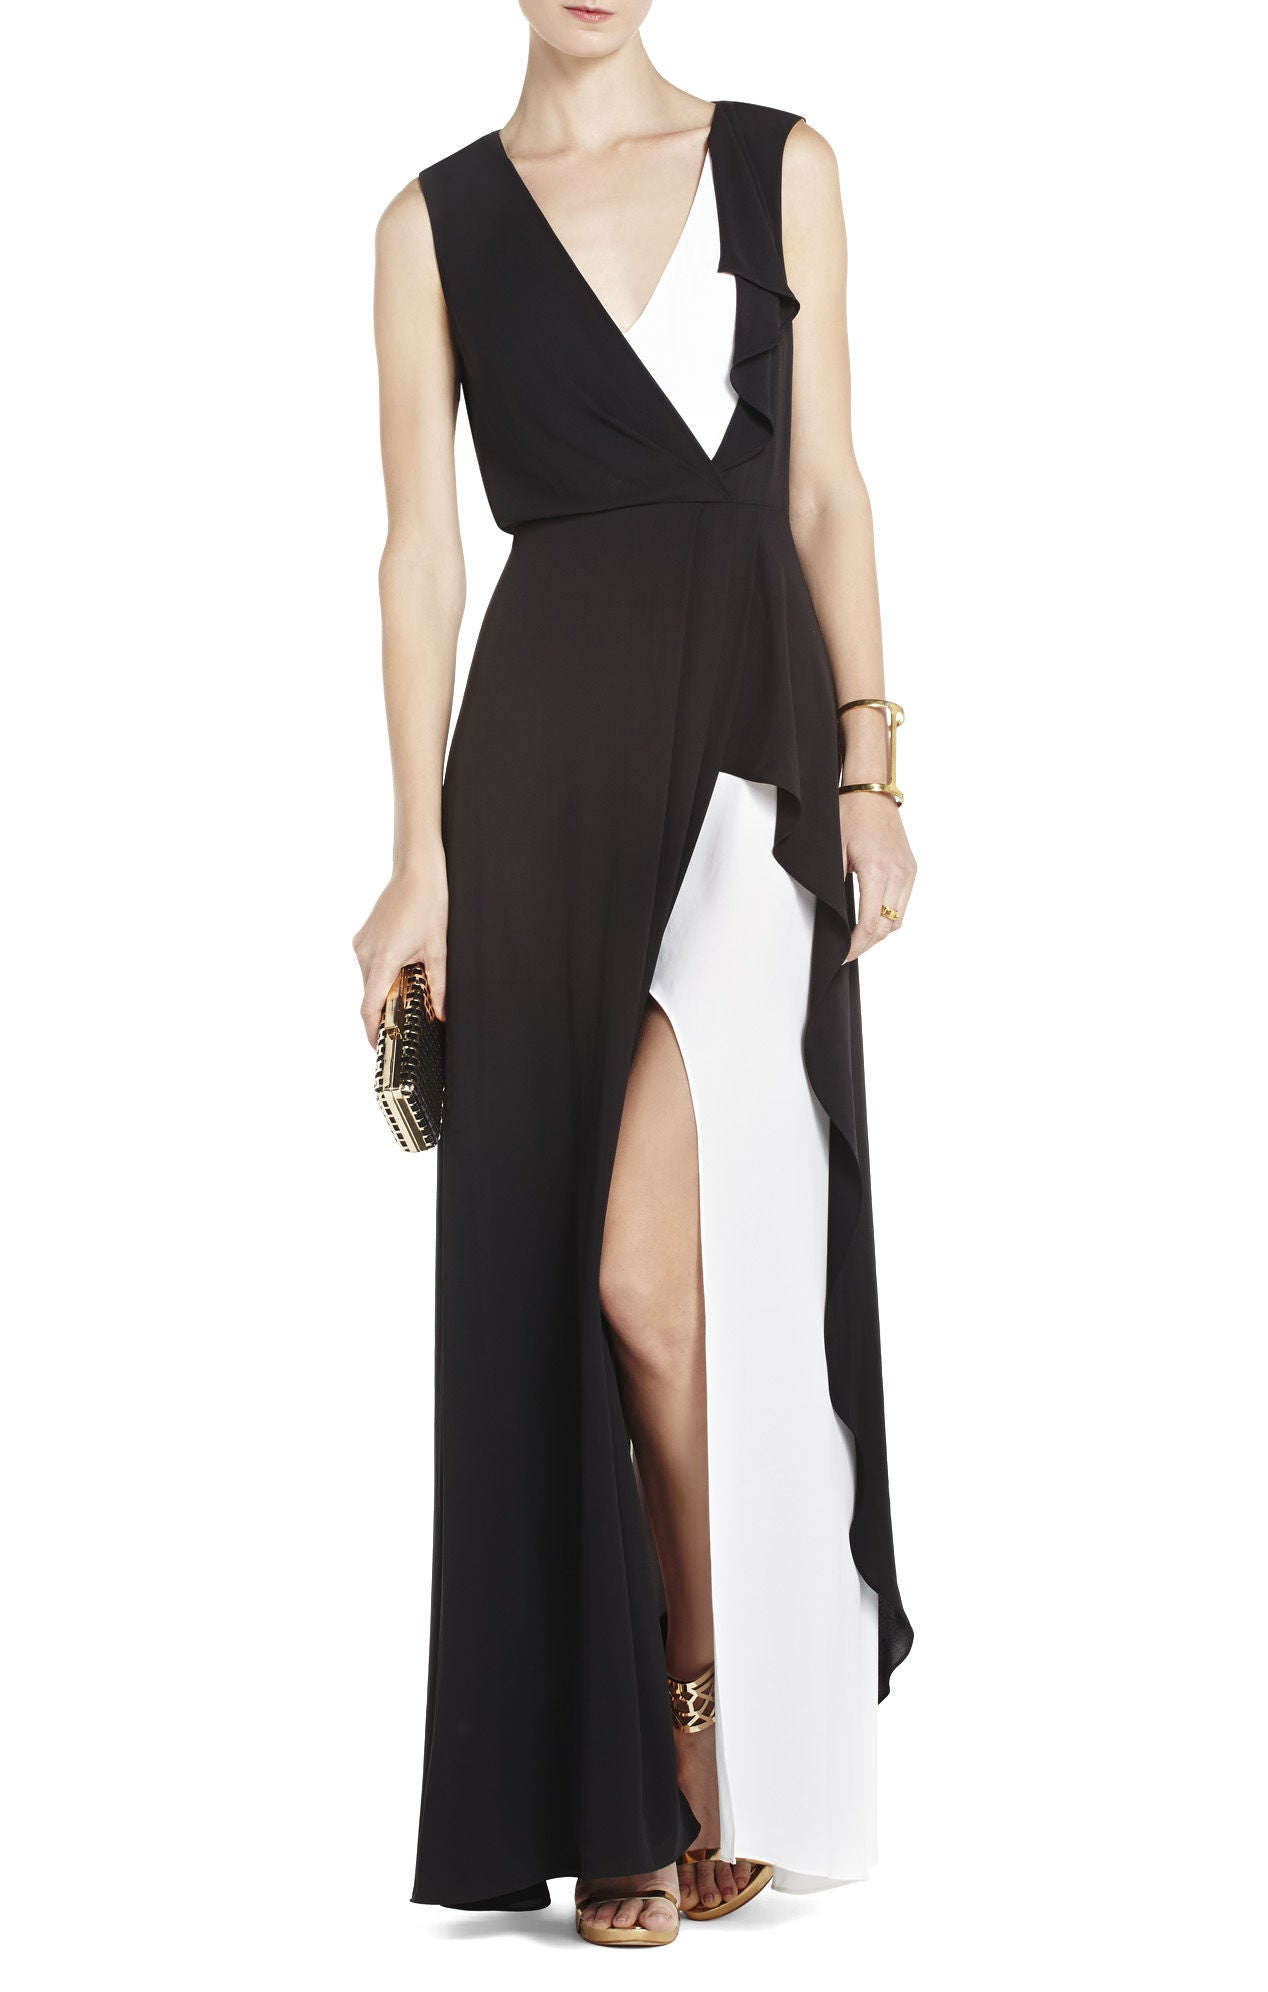 BCBG Black and White Gown – 10 Wooster